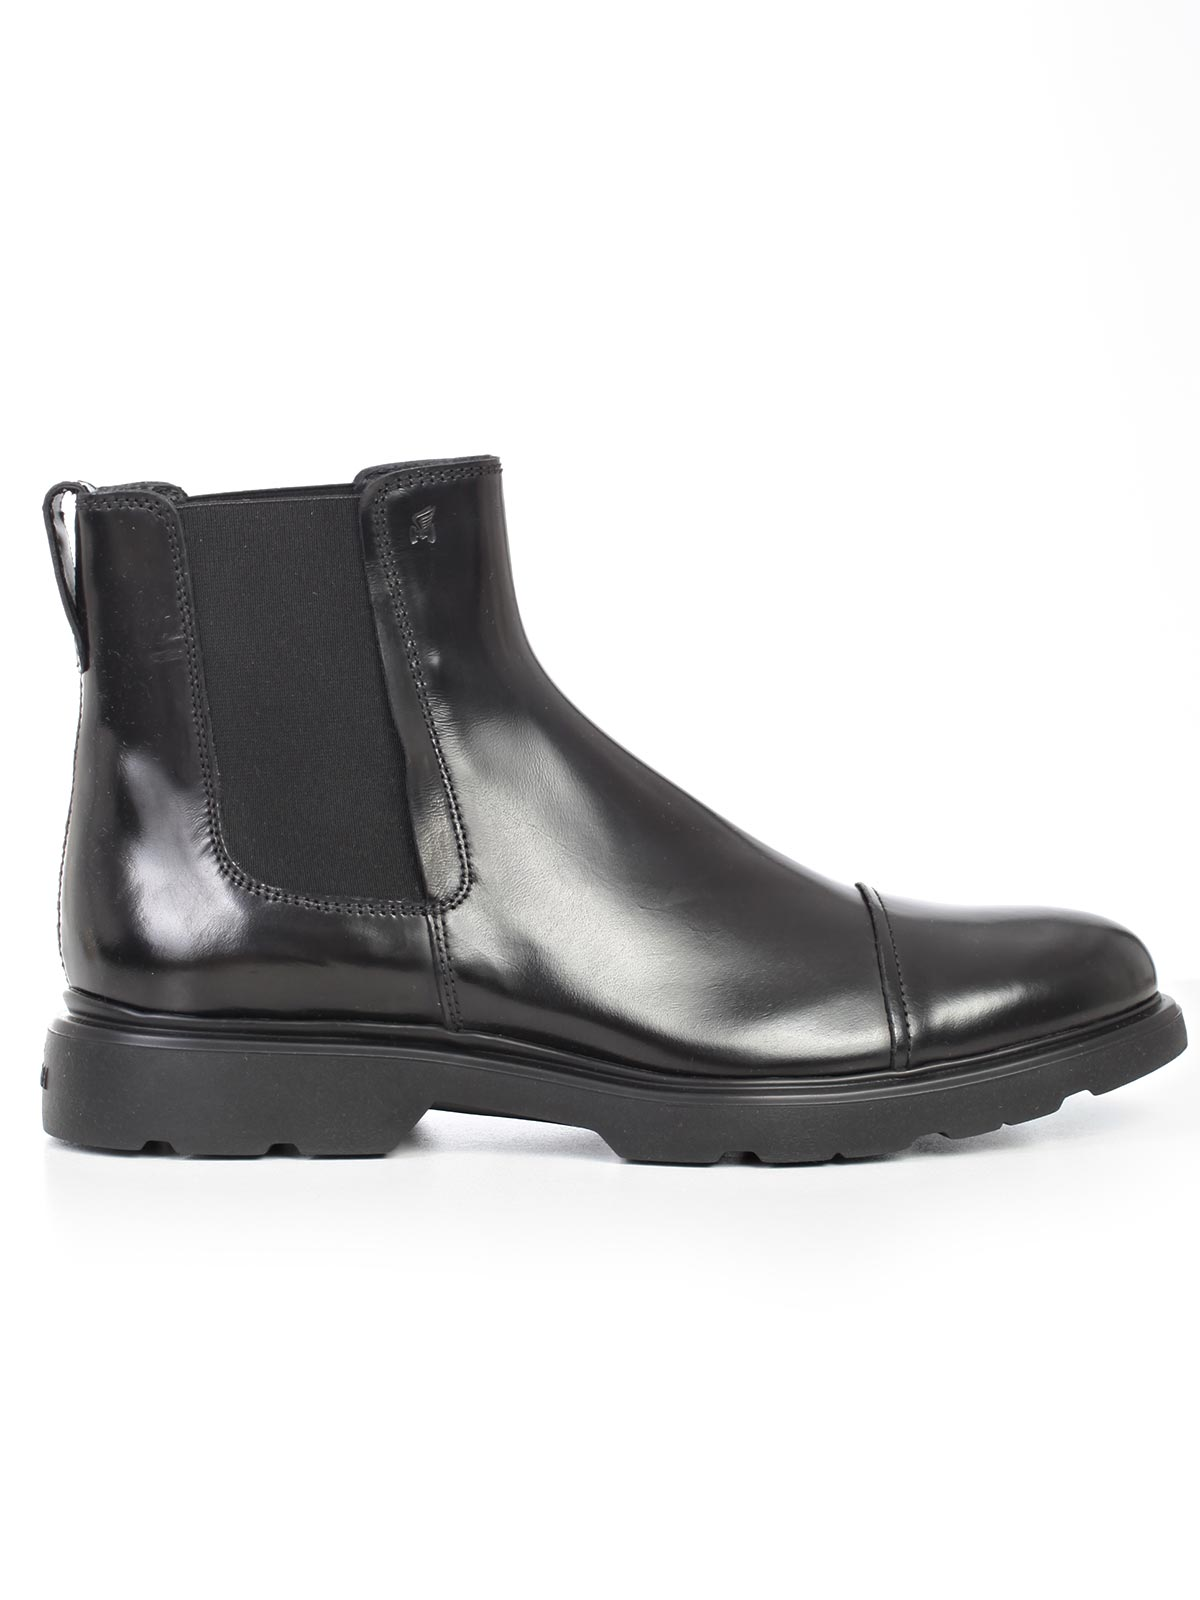 Picture of HOGAN Boots